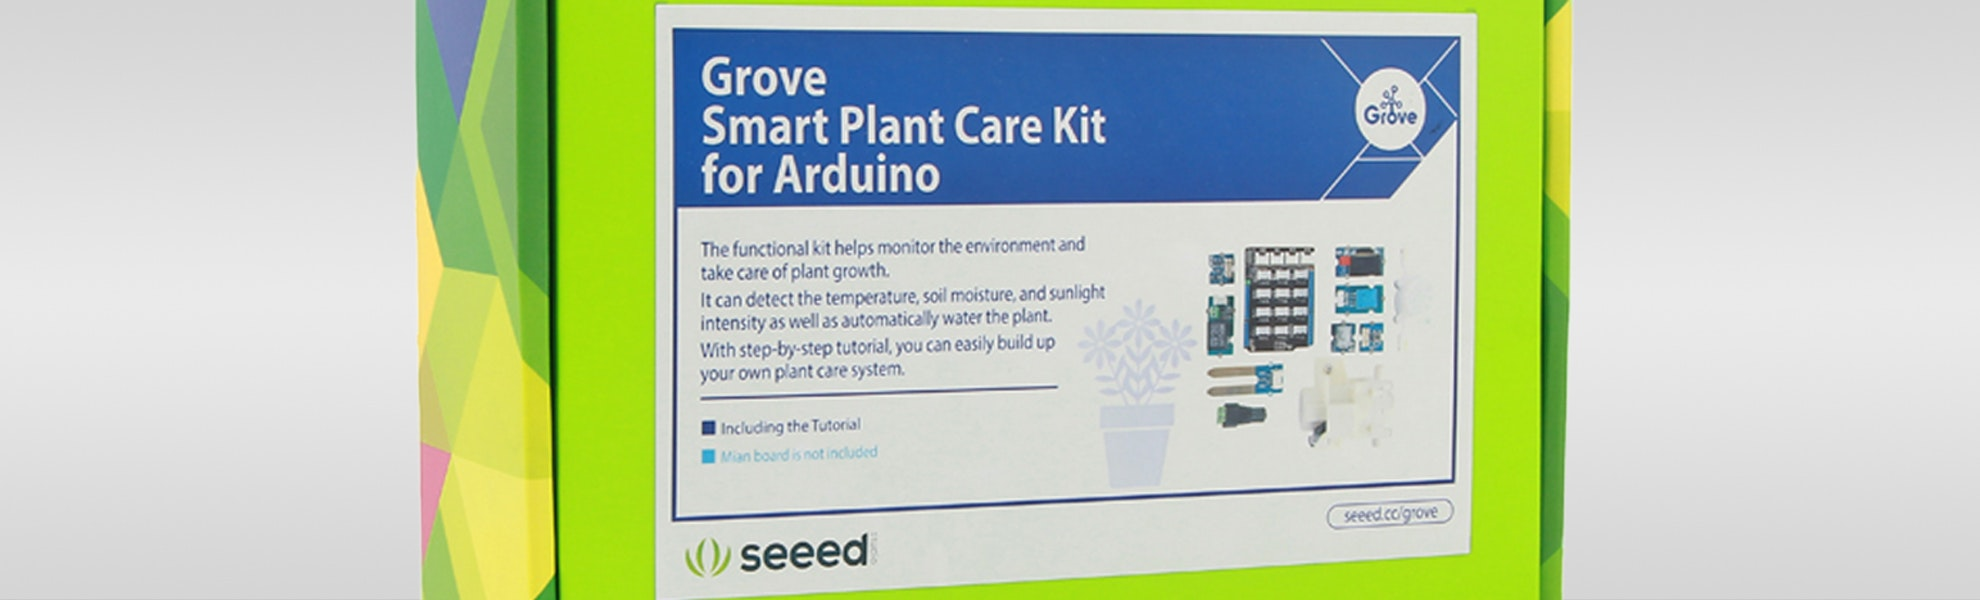 Seeed Grove Smart Plant Care Kit for Arduino